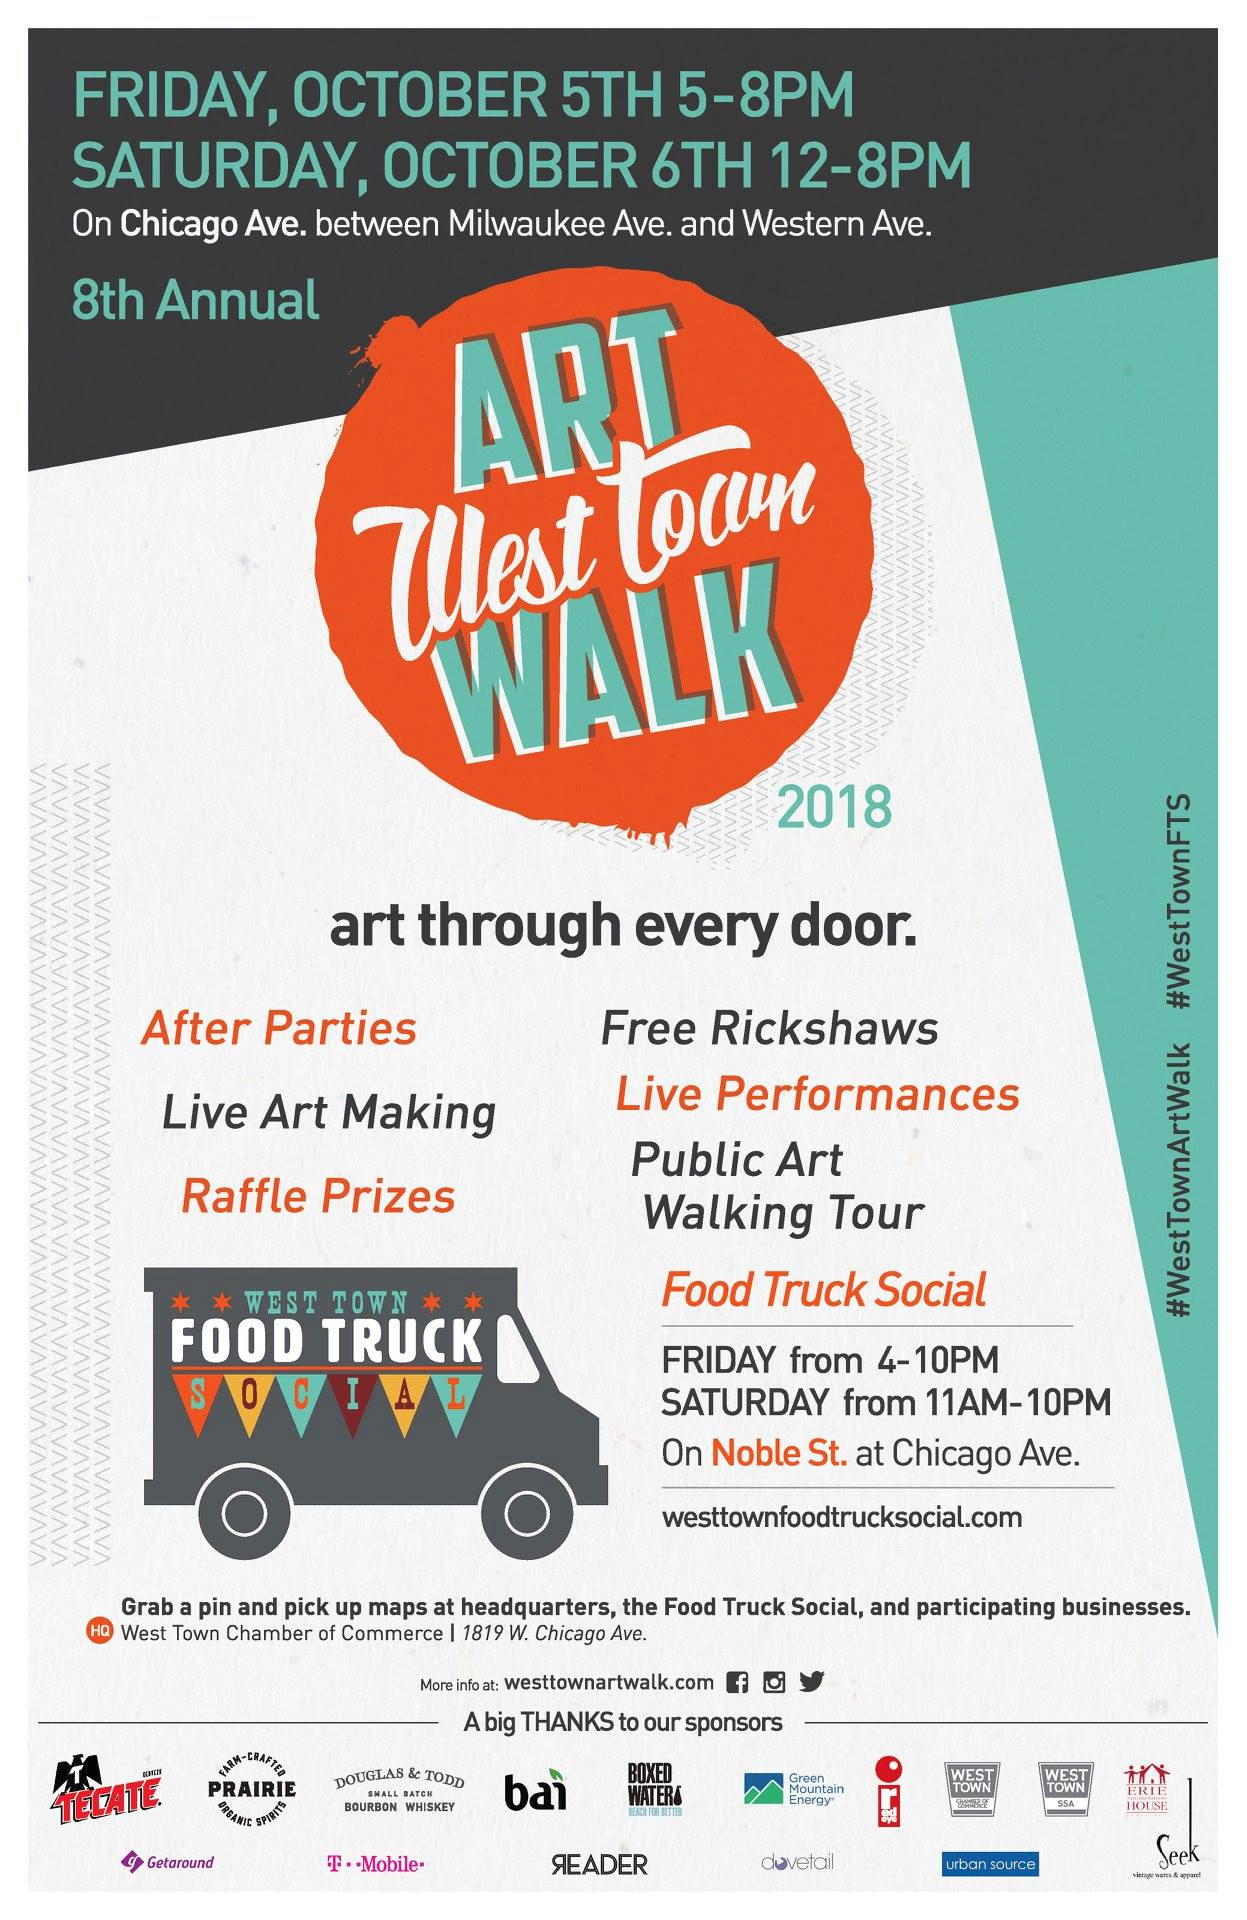 From major sales to can't miss live art demonstrations, head to the link below for details on all the exciting events happening during the #WestTownArtWalk ! www.westtownartwalk.com